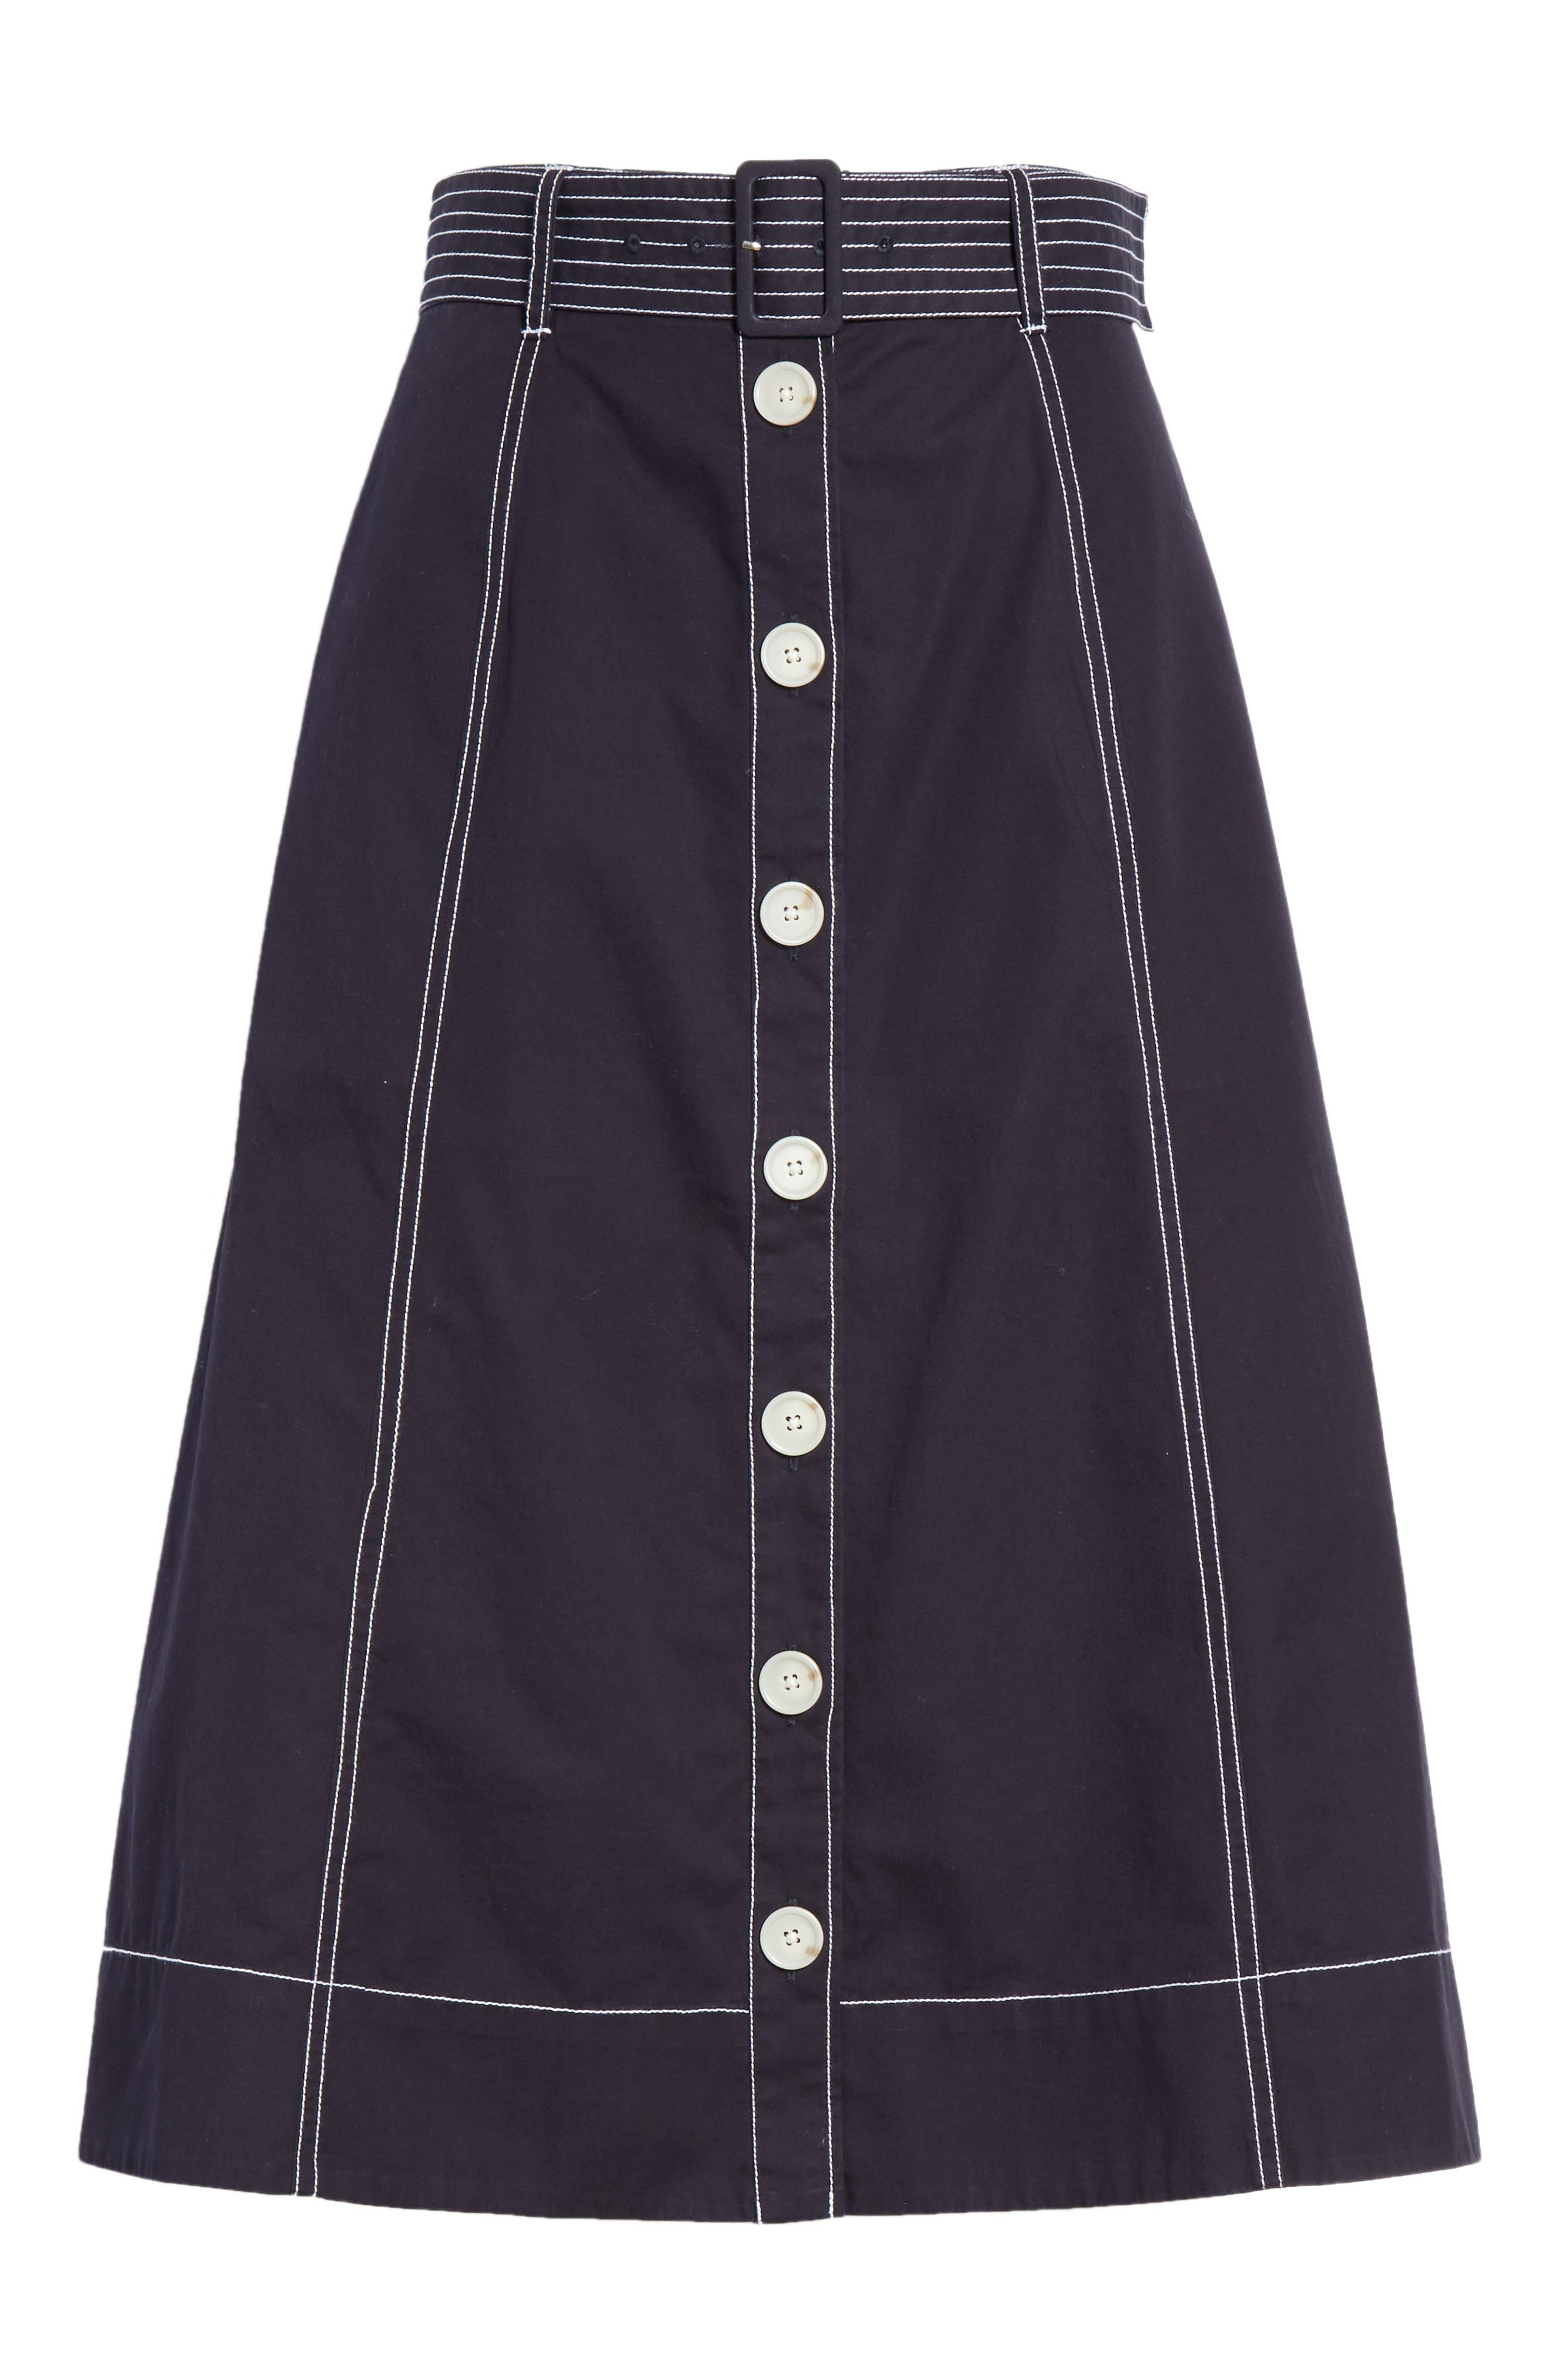 Mayaly Belted Cotton Skirt,                             Alternate thumbnail 6, color,                             410